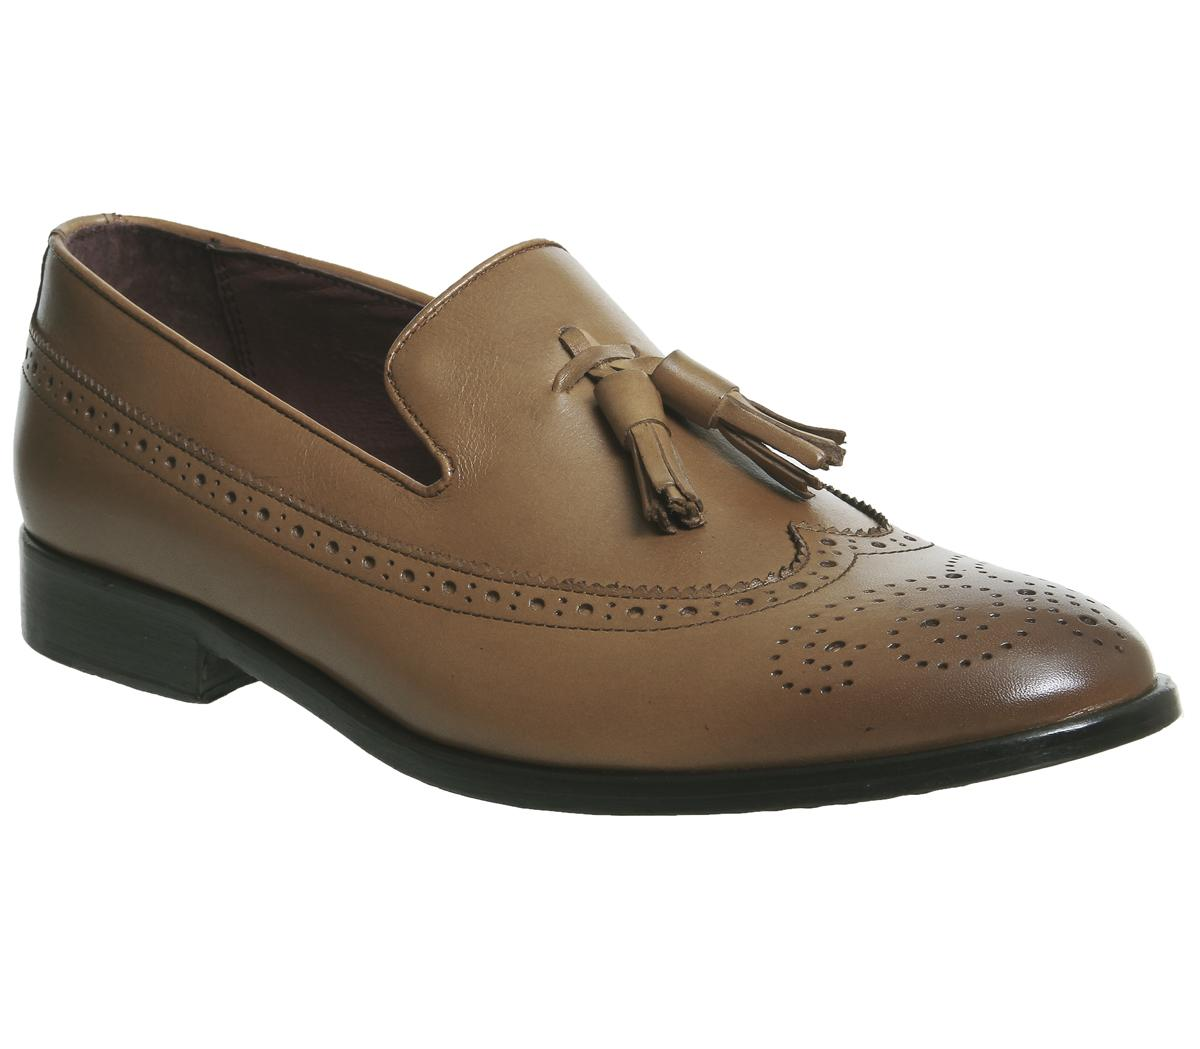 Fragola Tassel Loafers